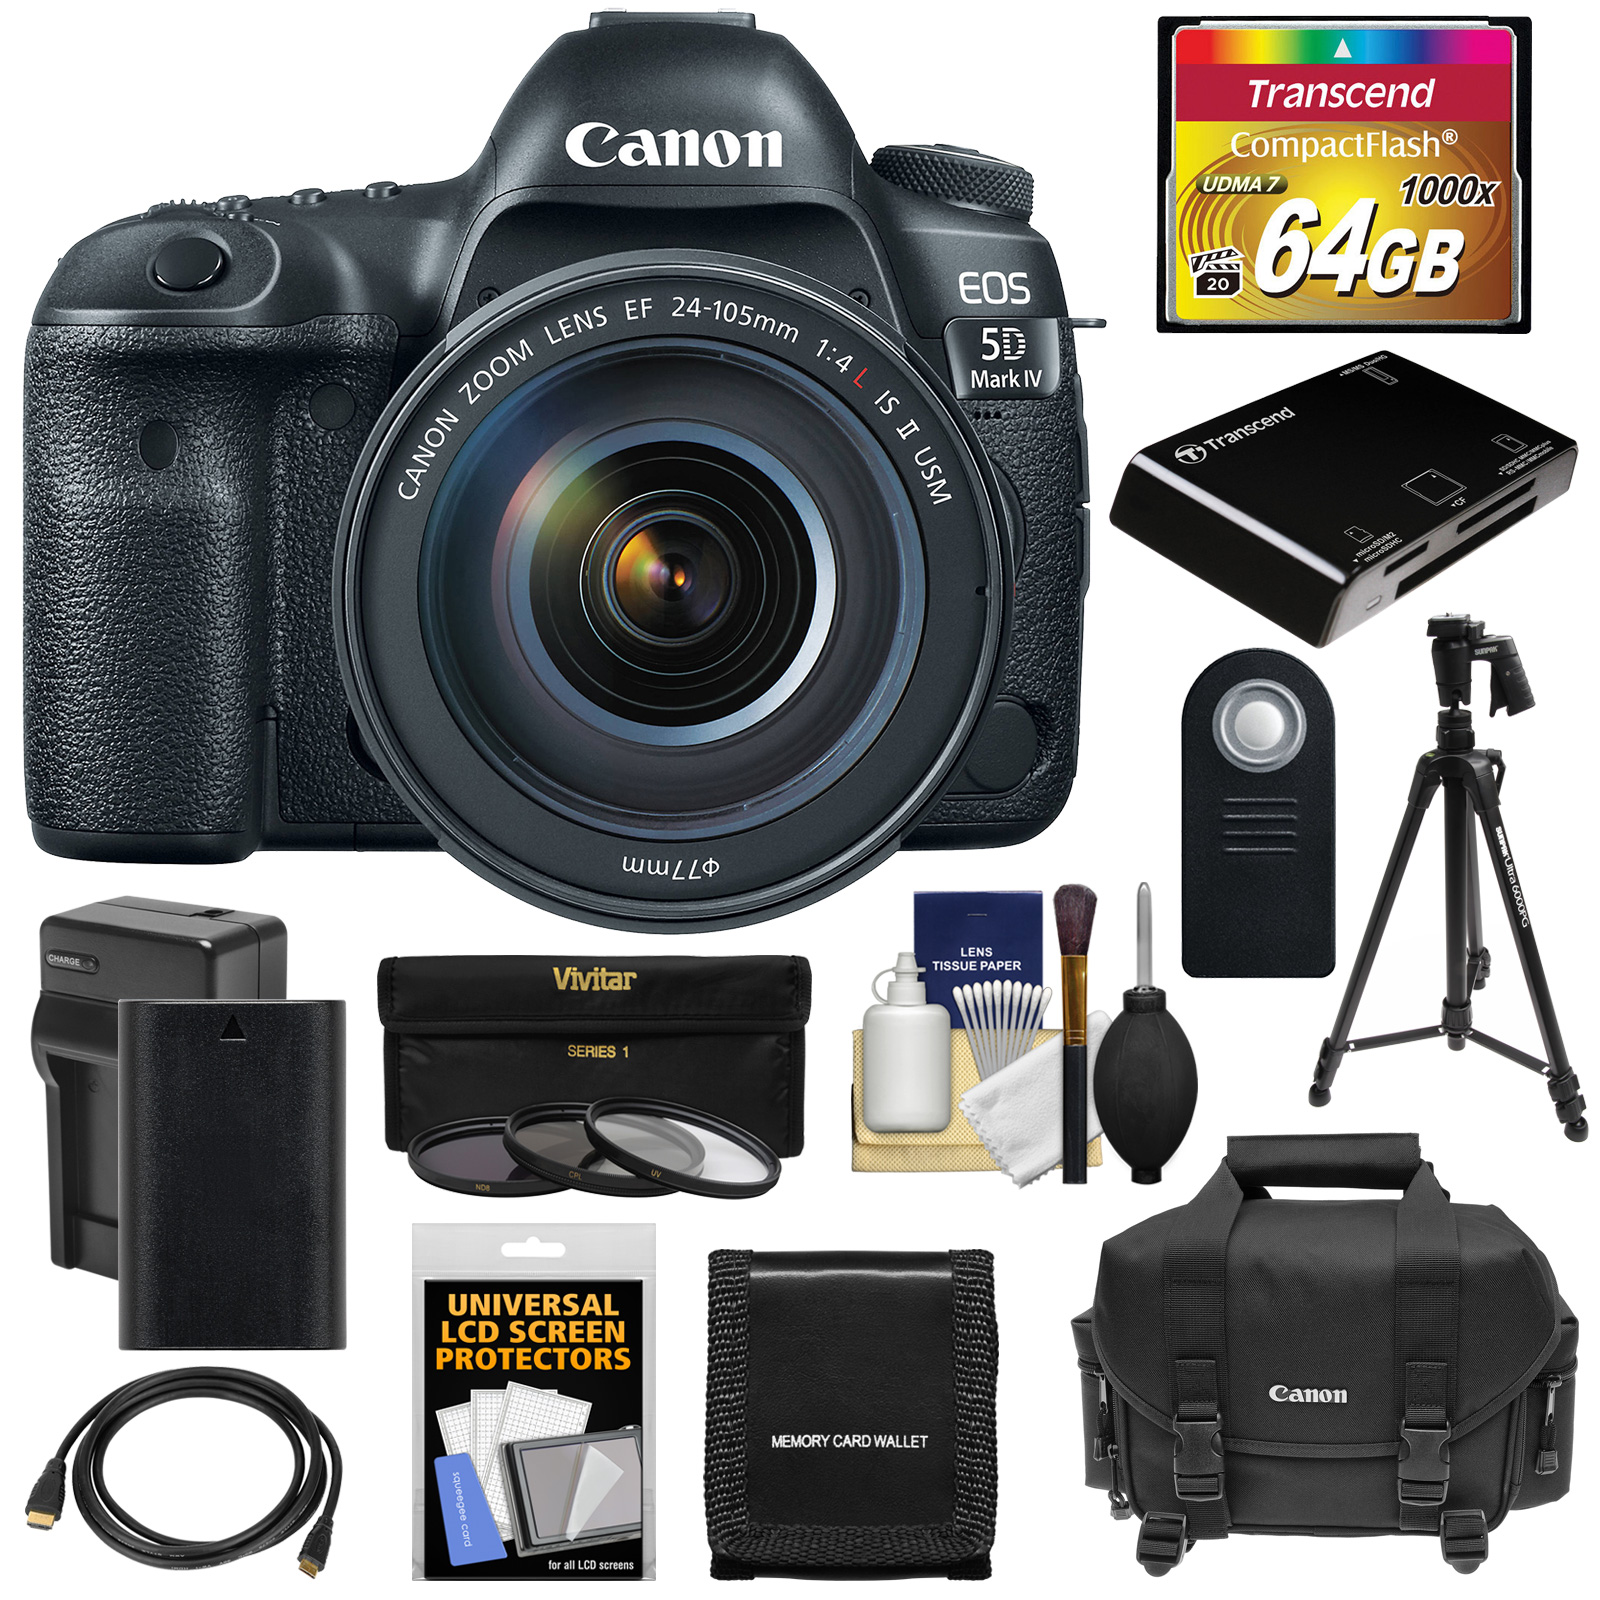 Canon EOS 5D Mark IV 4K Wi-Fi Digital SLR Camera & EF 24-105mm f 4L IS II USM Lens with 64GB Card + Battery &... by Canon